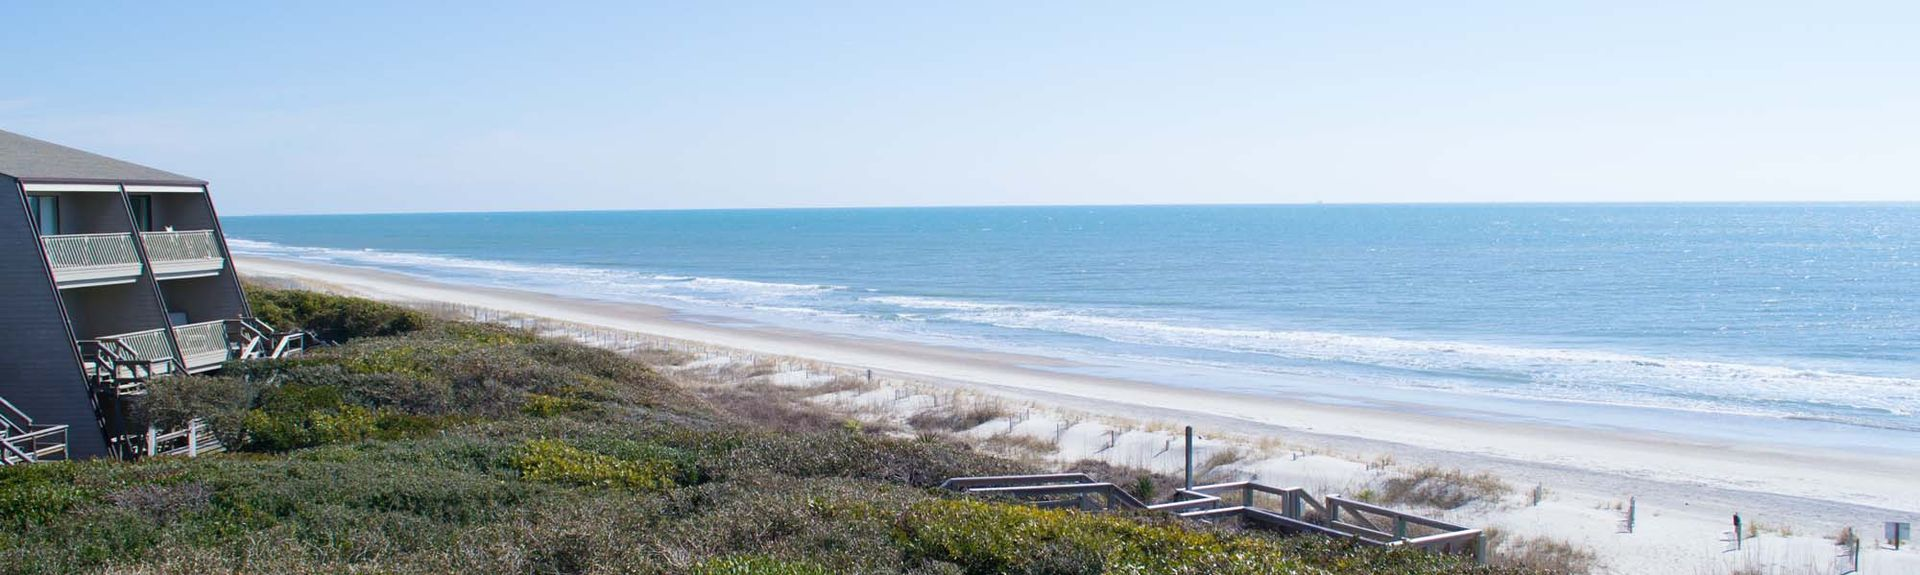 Beacons Reach (Pine Knoll Shores, North Carolina, United States)